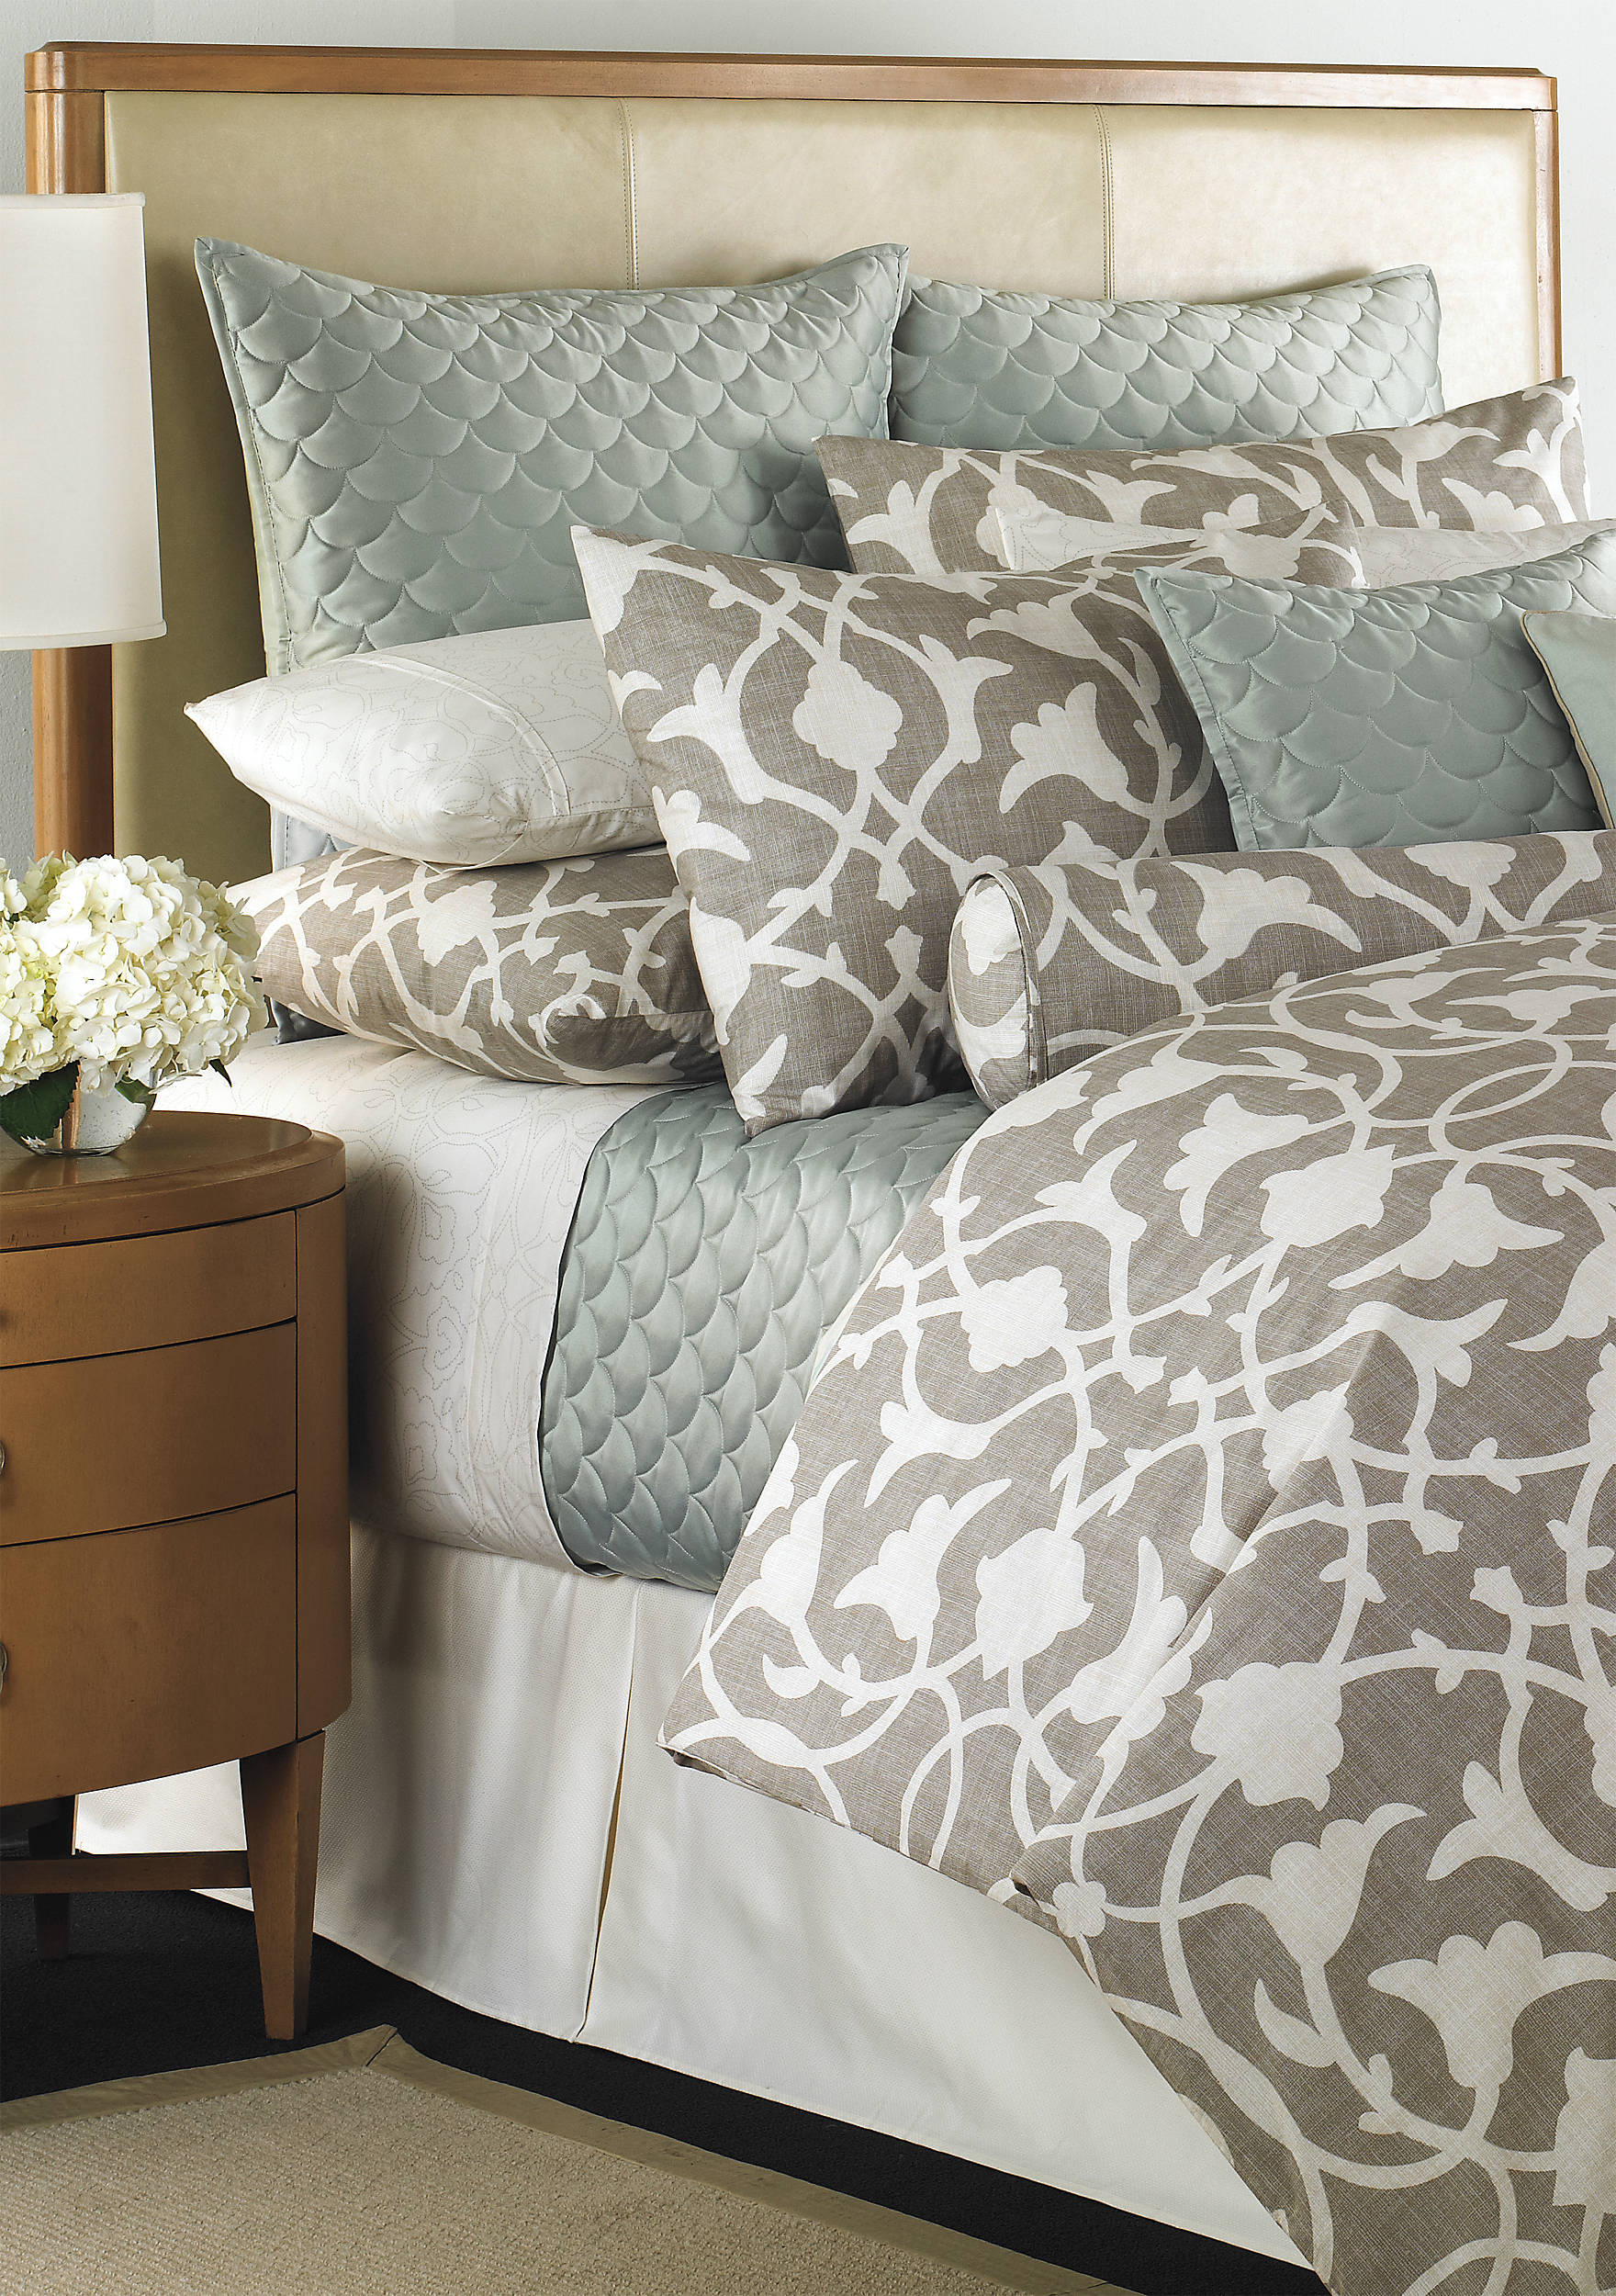 white p bedding comforter barbara barry to king set bed expand rose save sutton baltimore click piece in of